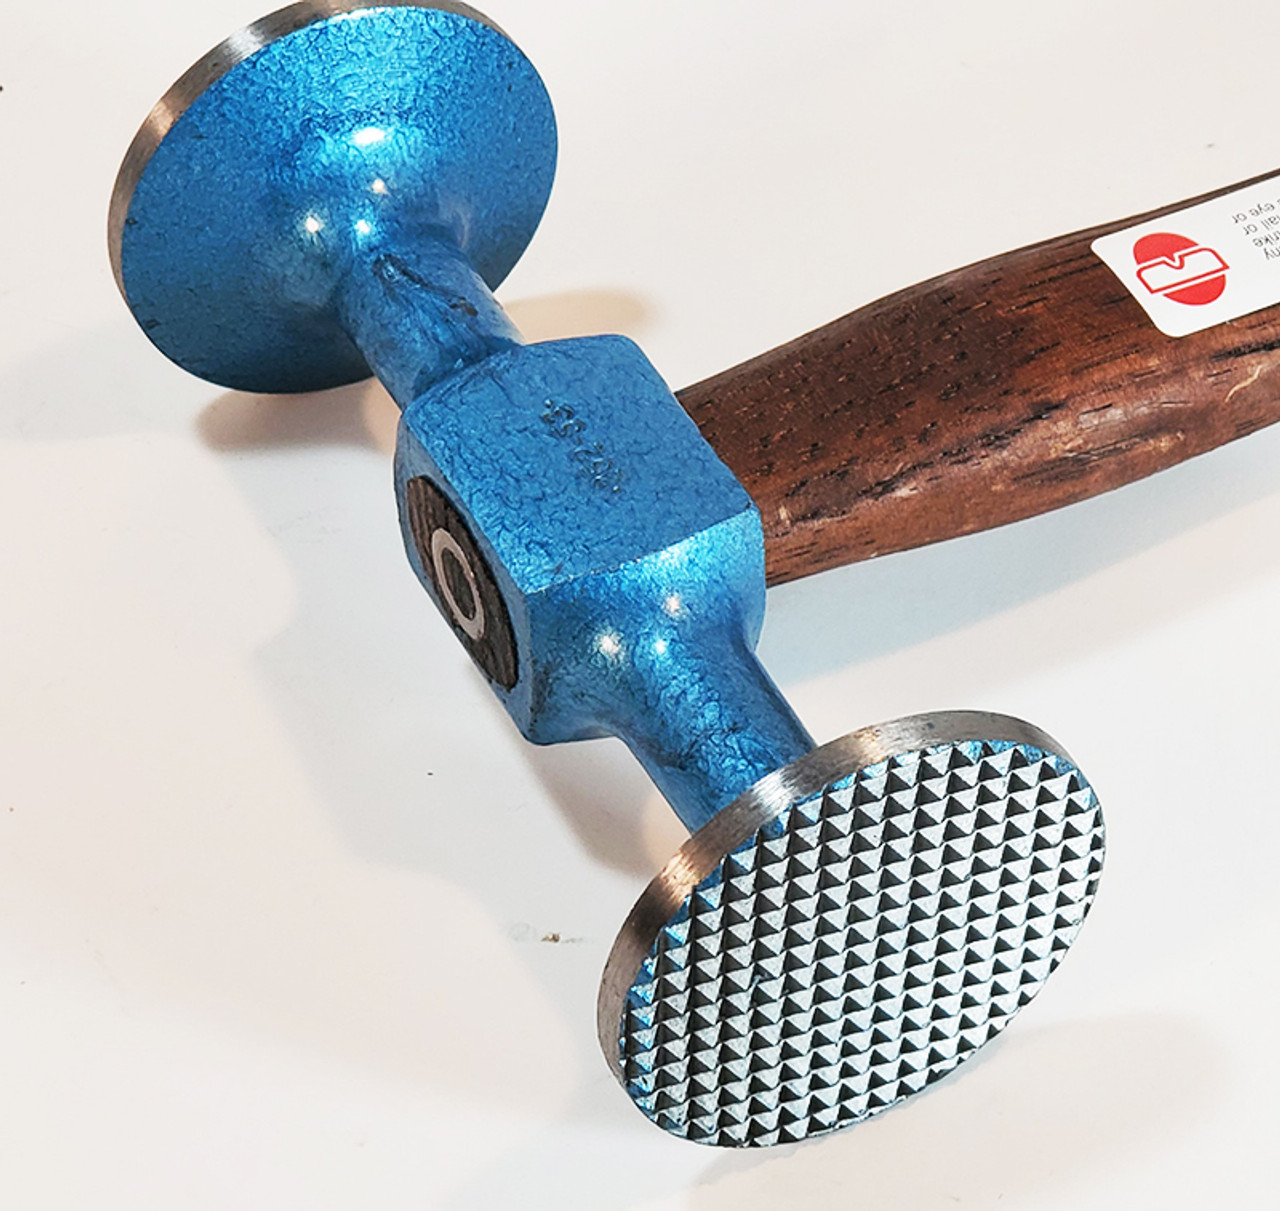 Picard 2525302 Shrinking Hammer, 500gm (18oz), extra wide faces - 47mm round smooth face and 47mm round checked face.